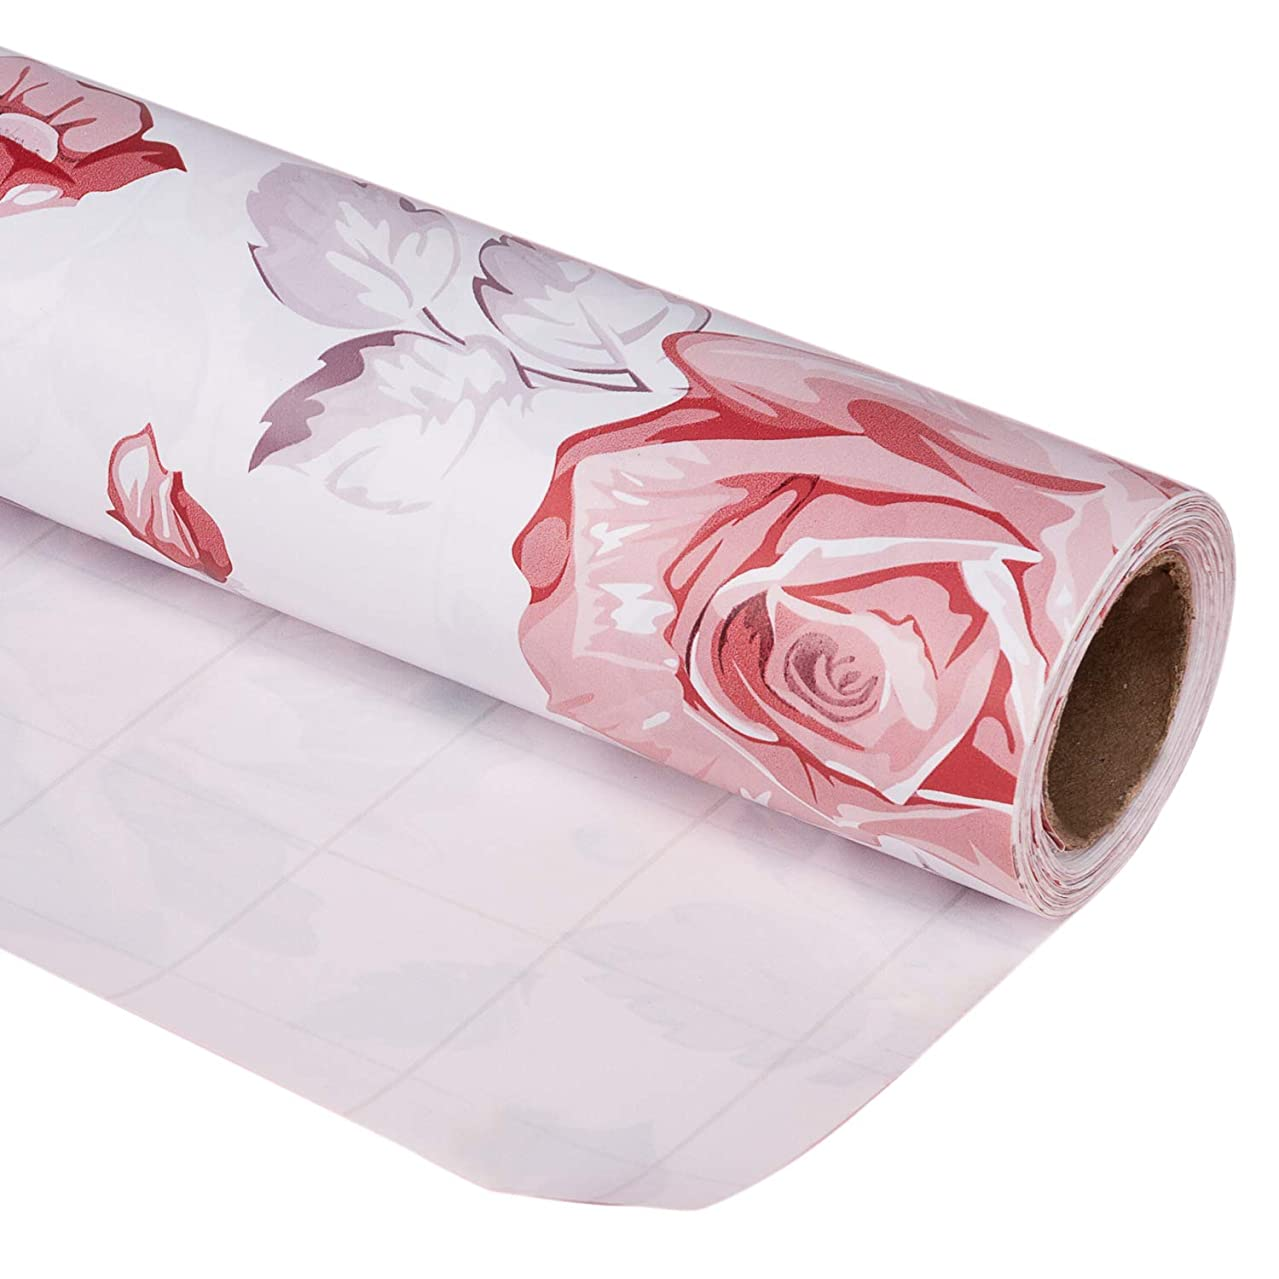 LaRibbons Gift Wrapping Paper Roll - Beautiful Floral Design for Birthday, Mother Day, Wedding, Holiday Gift Wrap - 30 inch x 32.8 feet (81.8 sq ft.) - Sold Individually